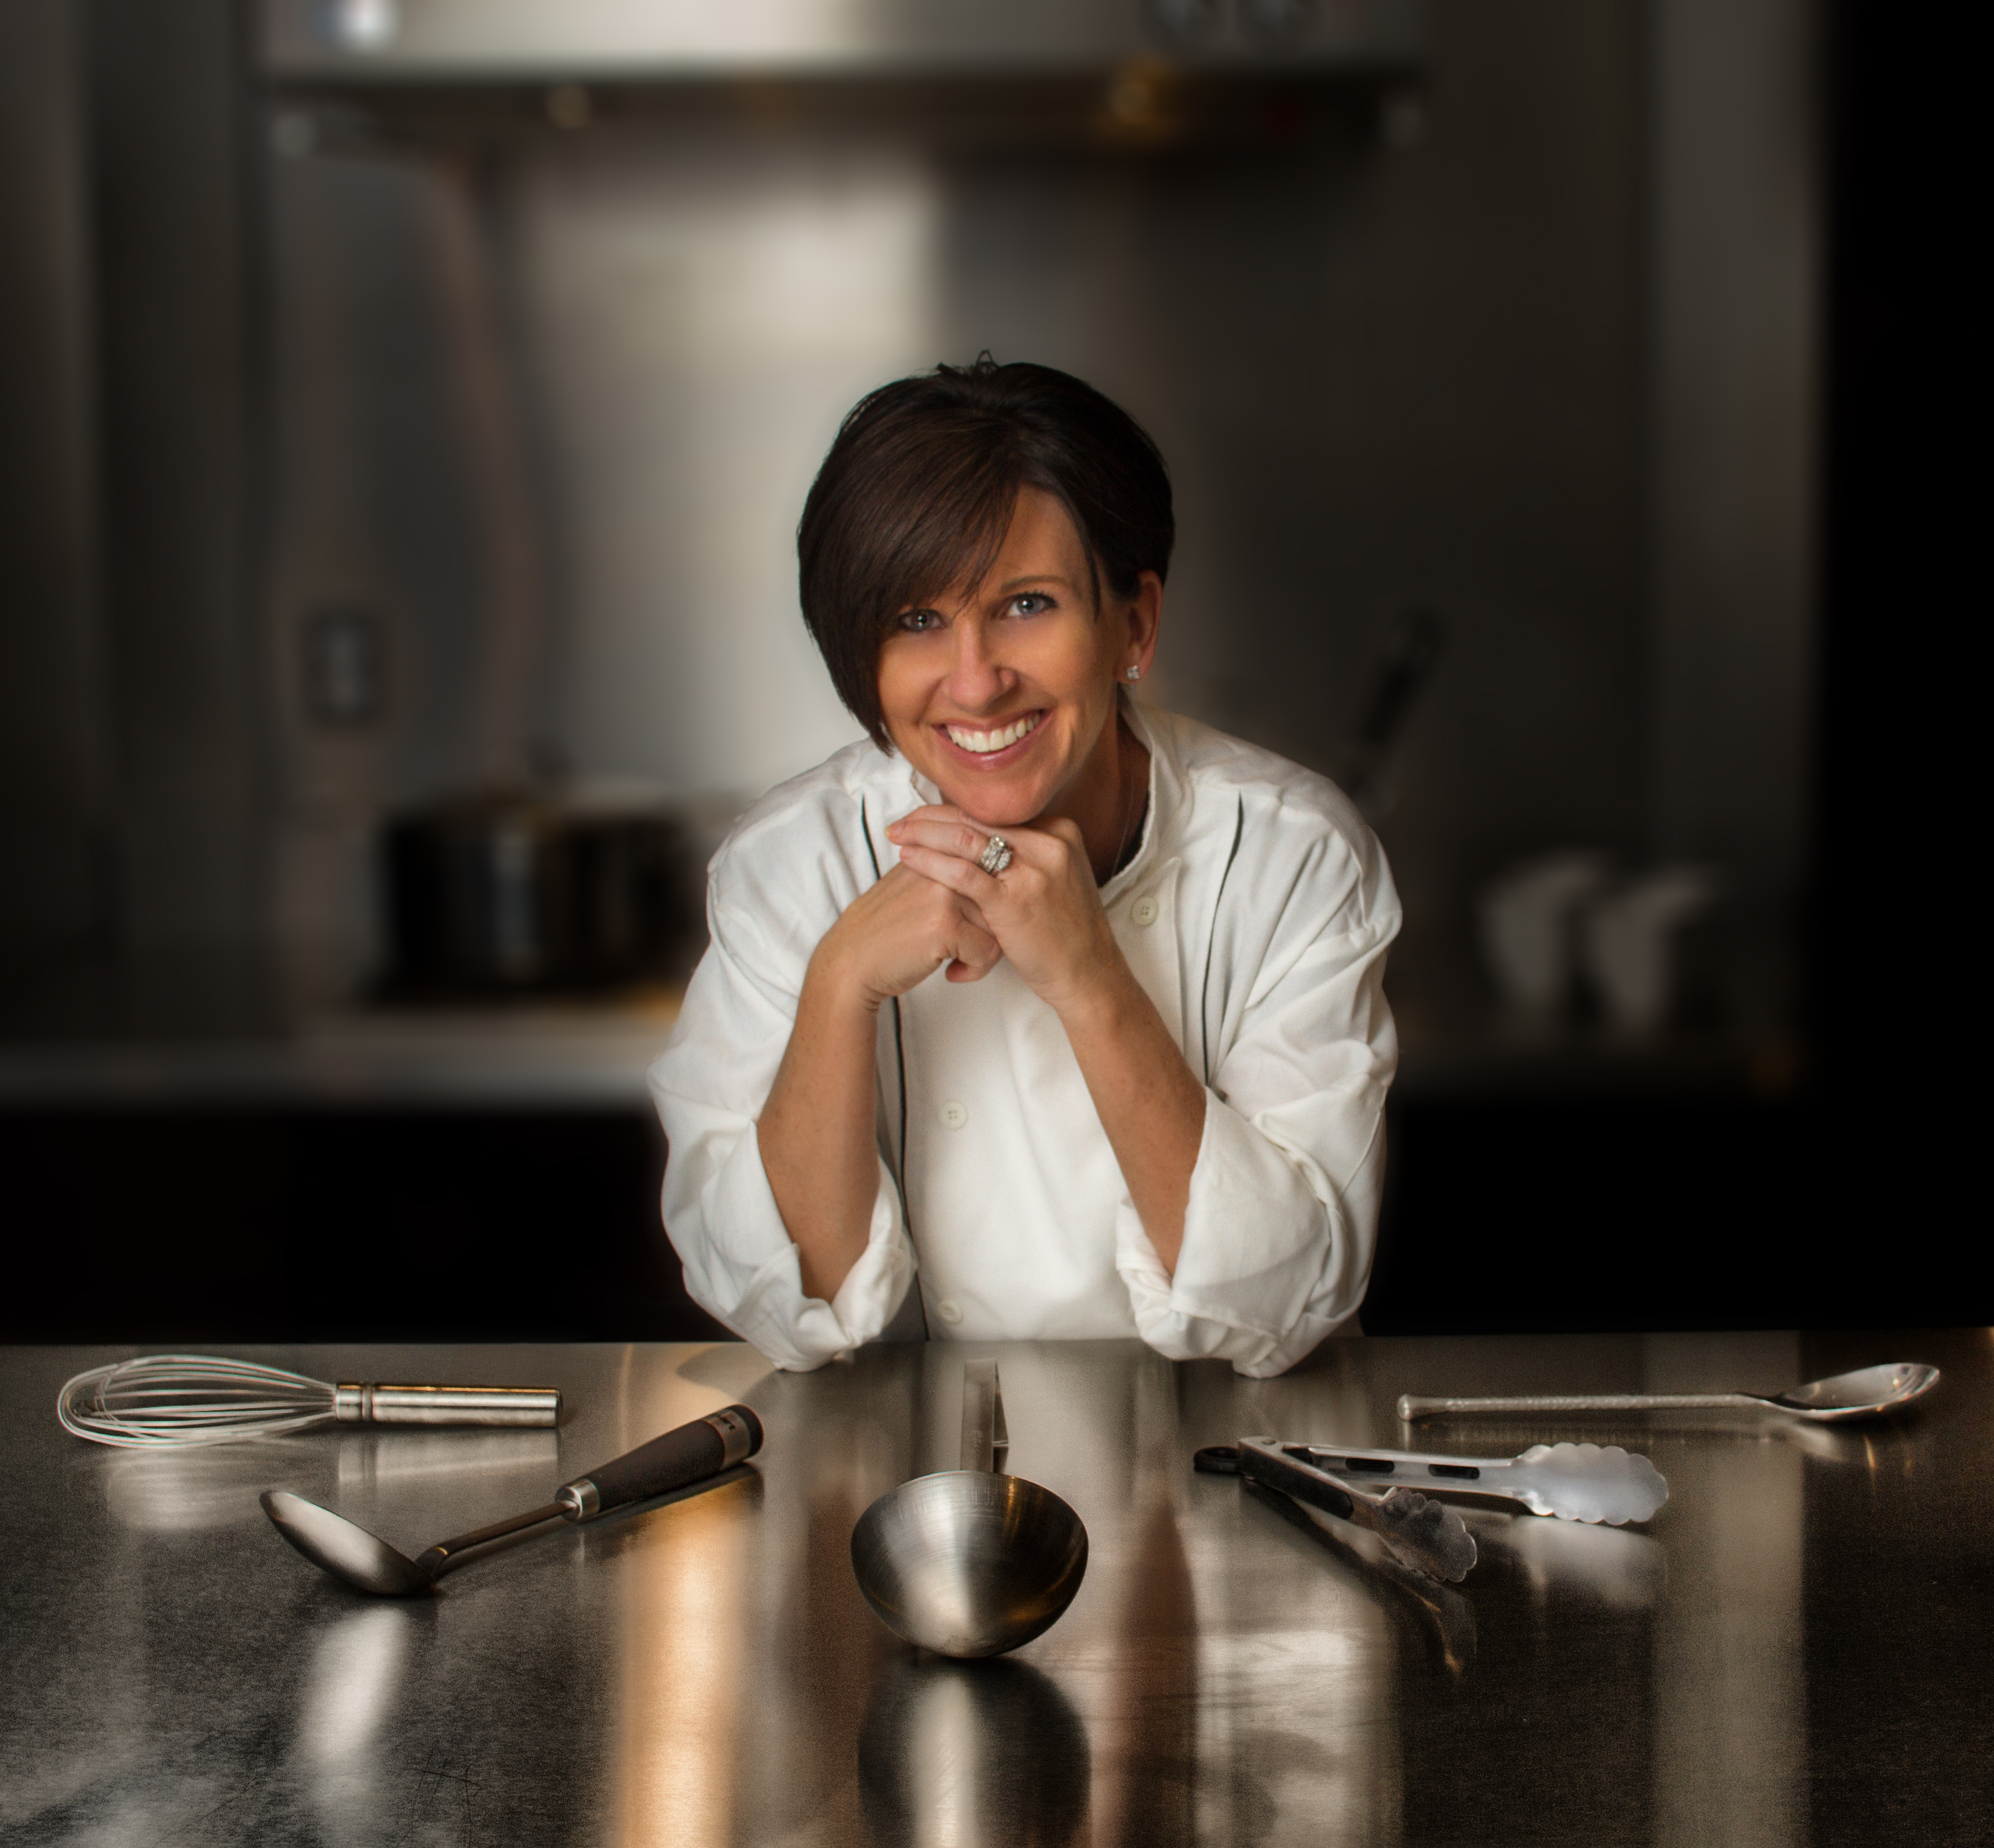 Evolution Catering's Executive Chef Hope Stuart